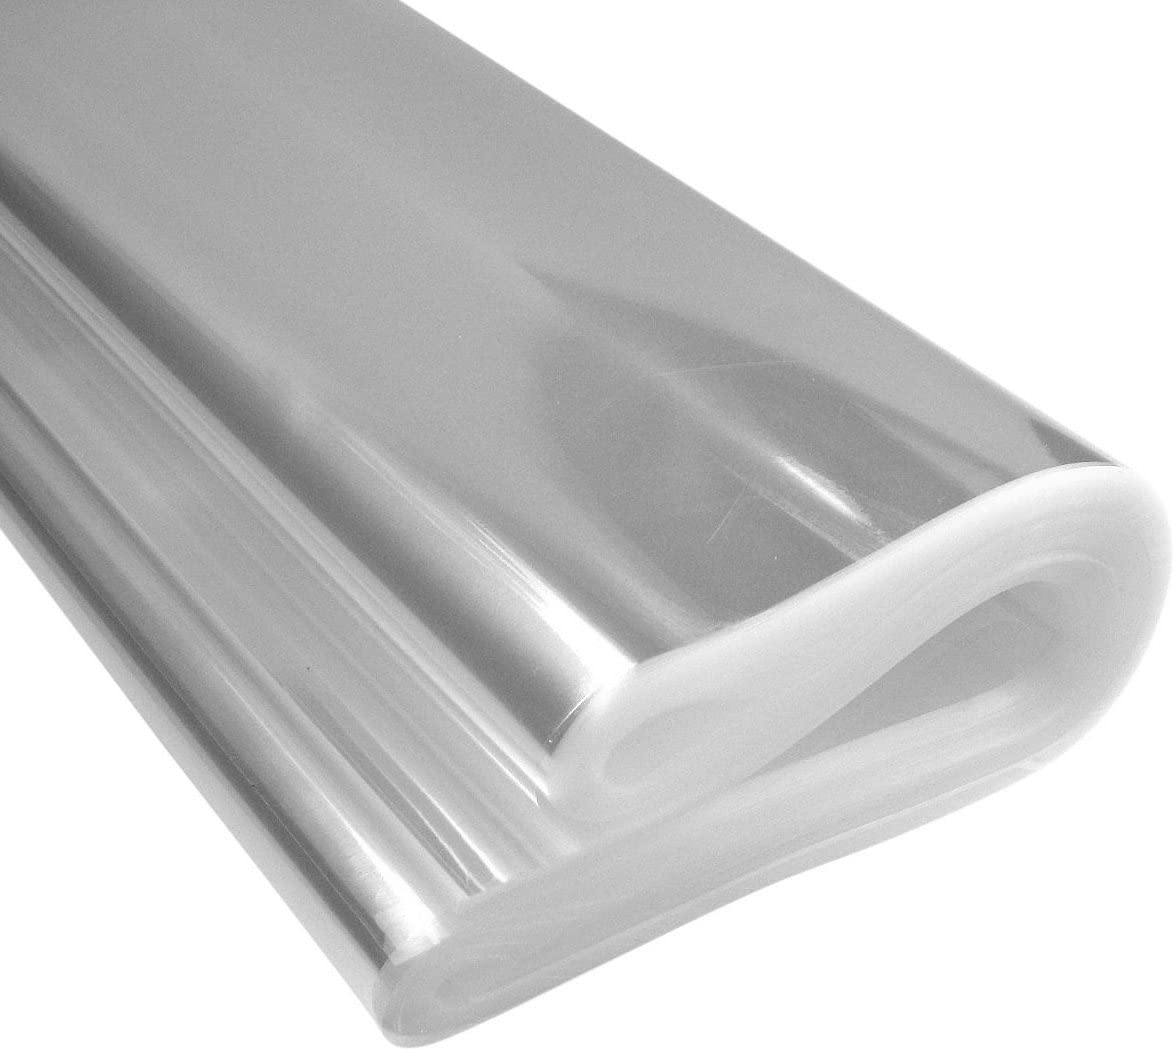 Temkin 1215C, 12x15-Inch Clear Cellophane Sheets, Wrap Take Out Disposable Catering Sheets (50)